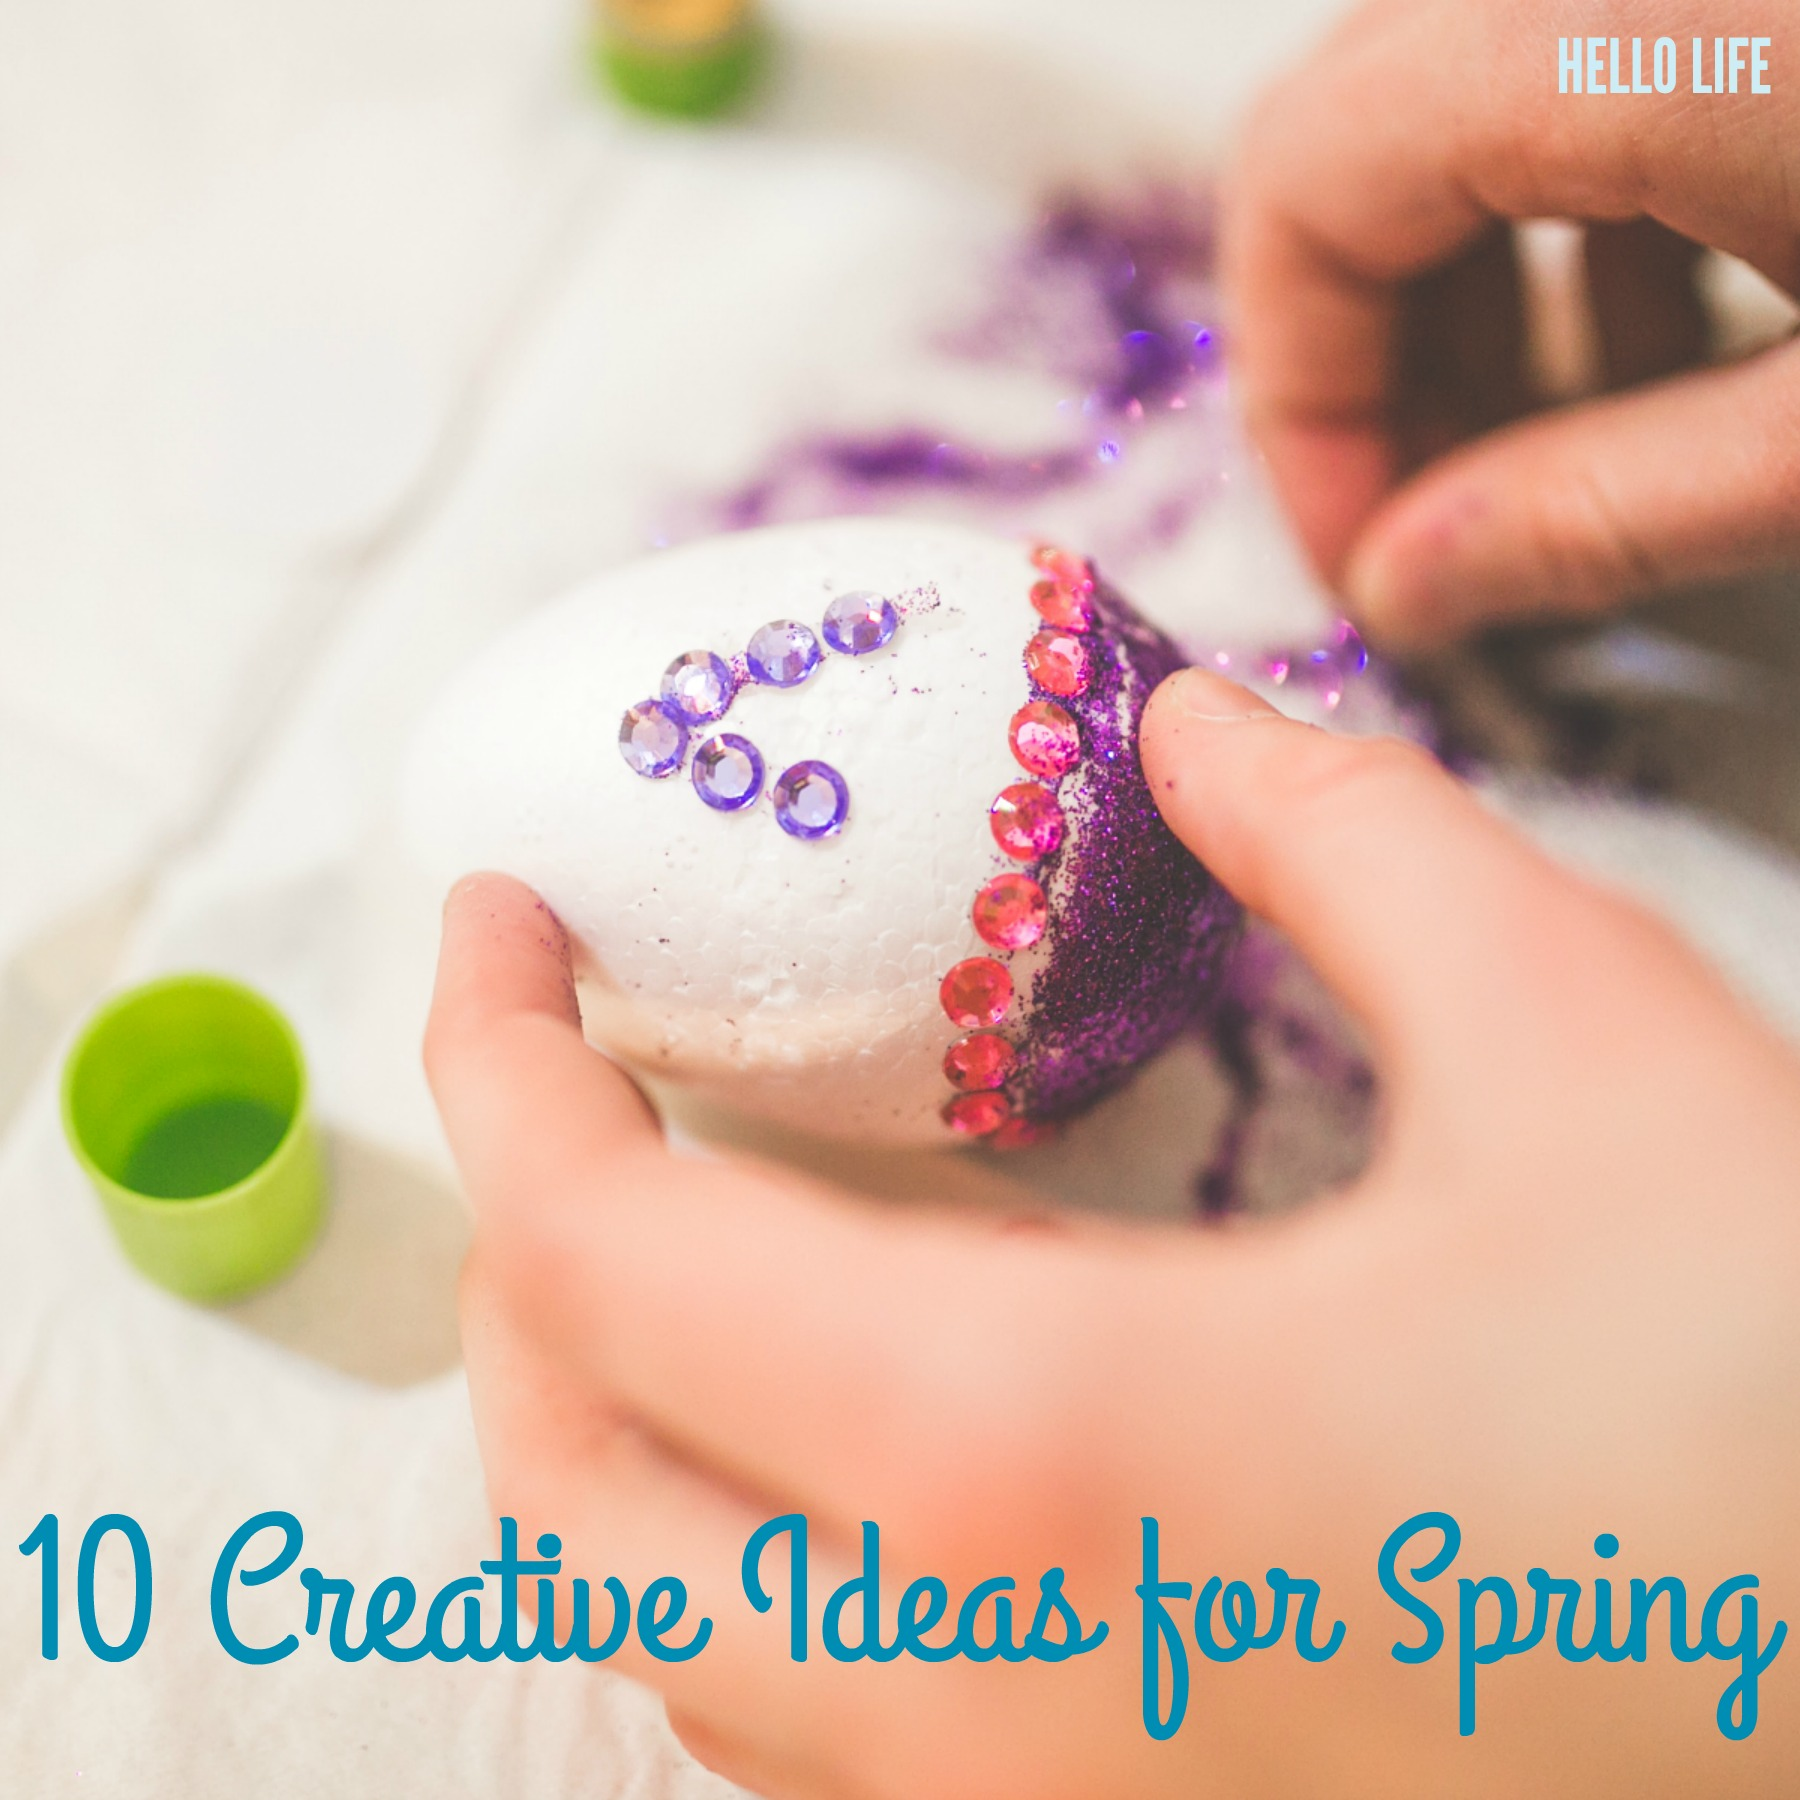 10 Creative Ideas For Spring | Hello Life hellolifeonline.com